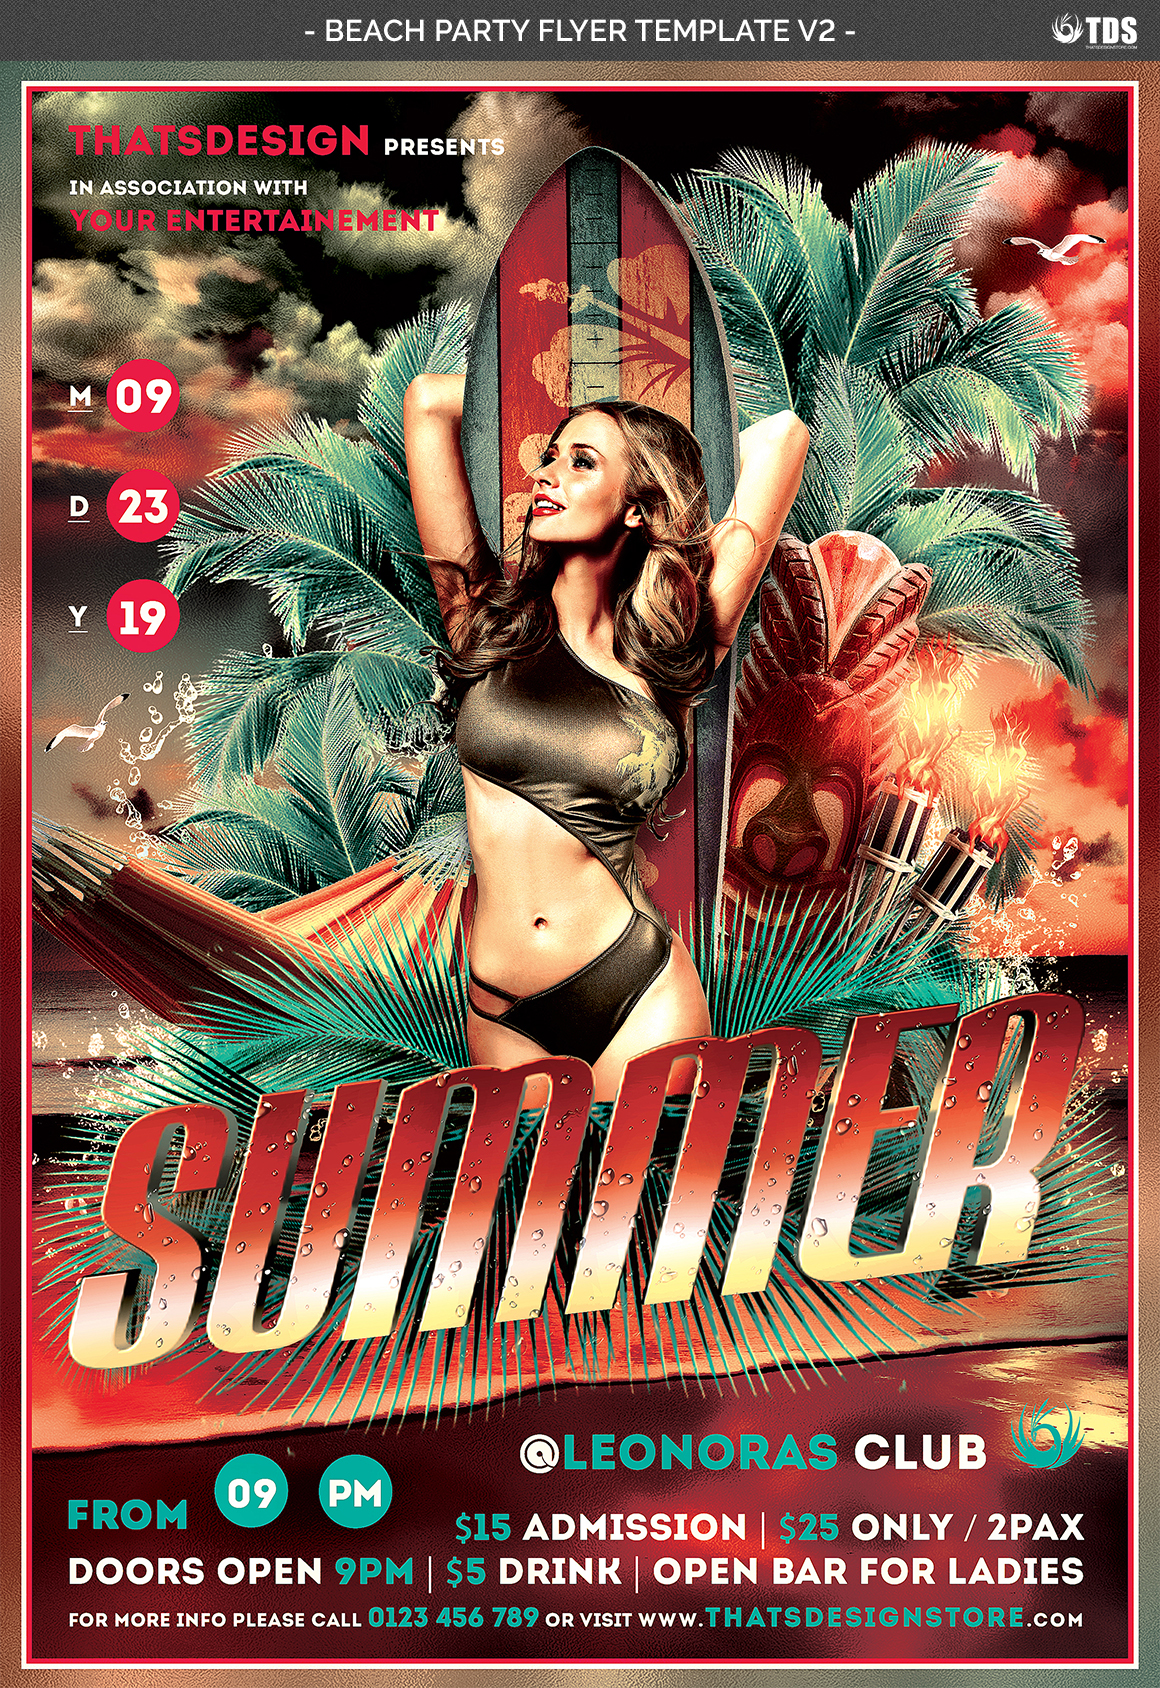 Beach Party Flyer Template V2 example image 4